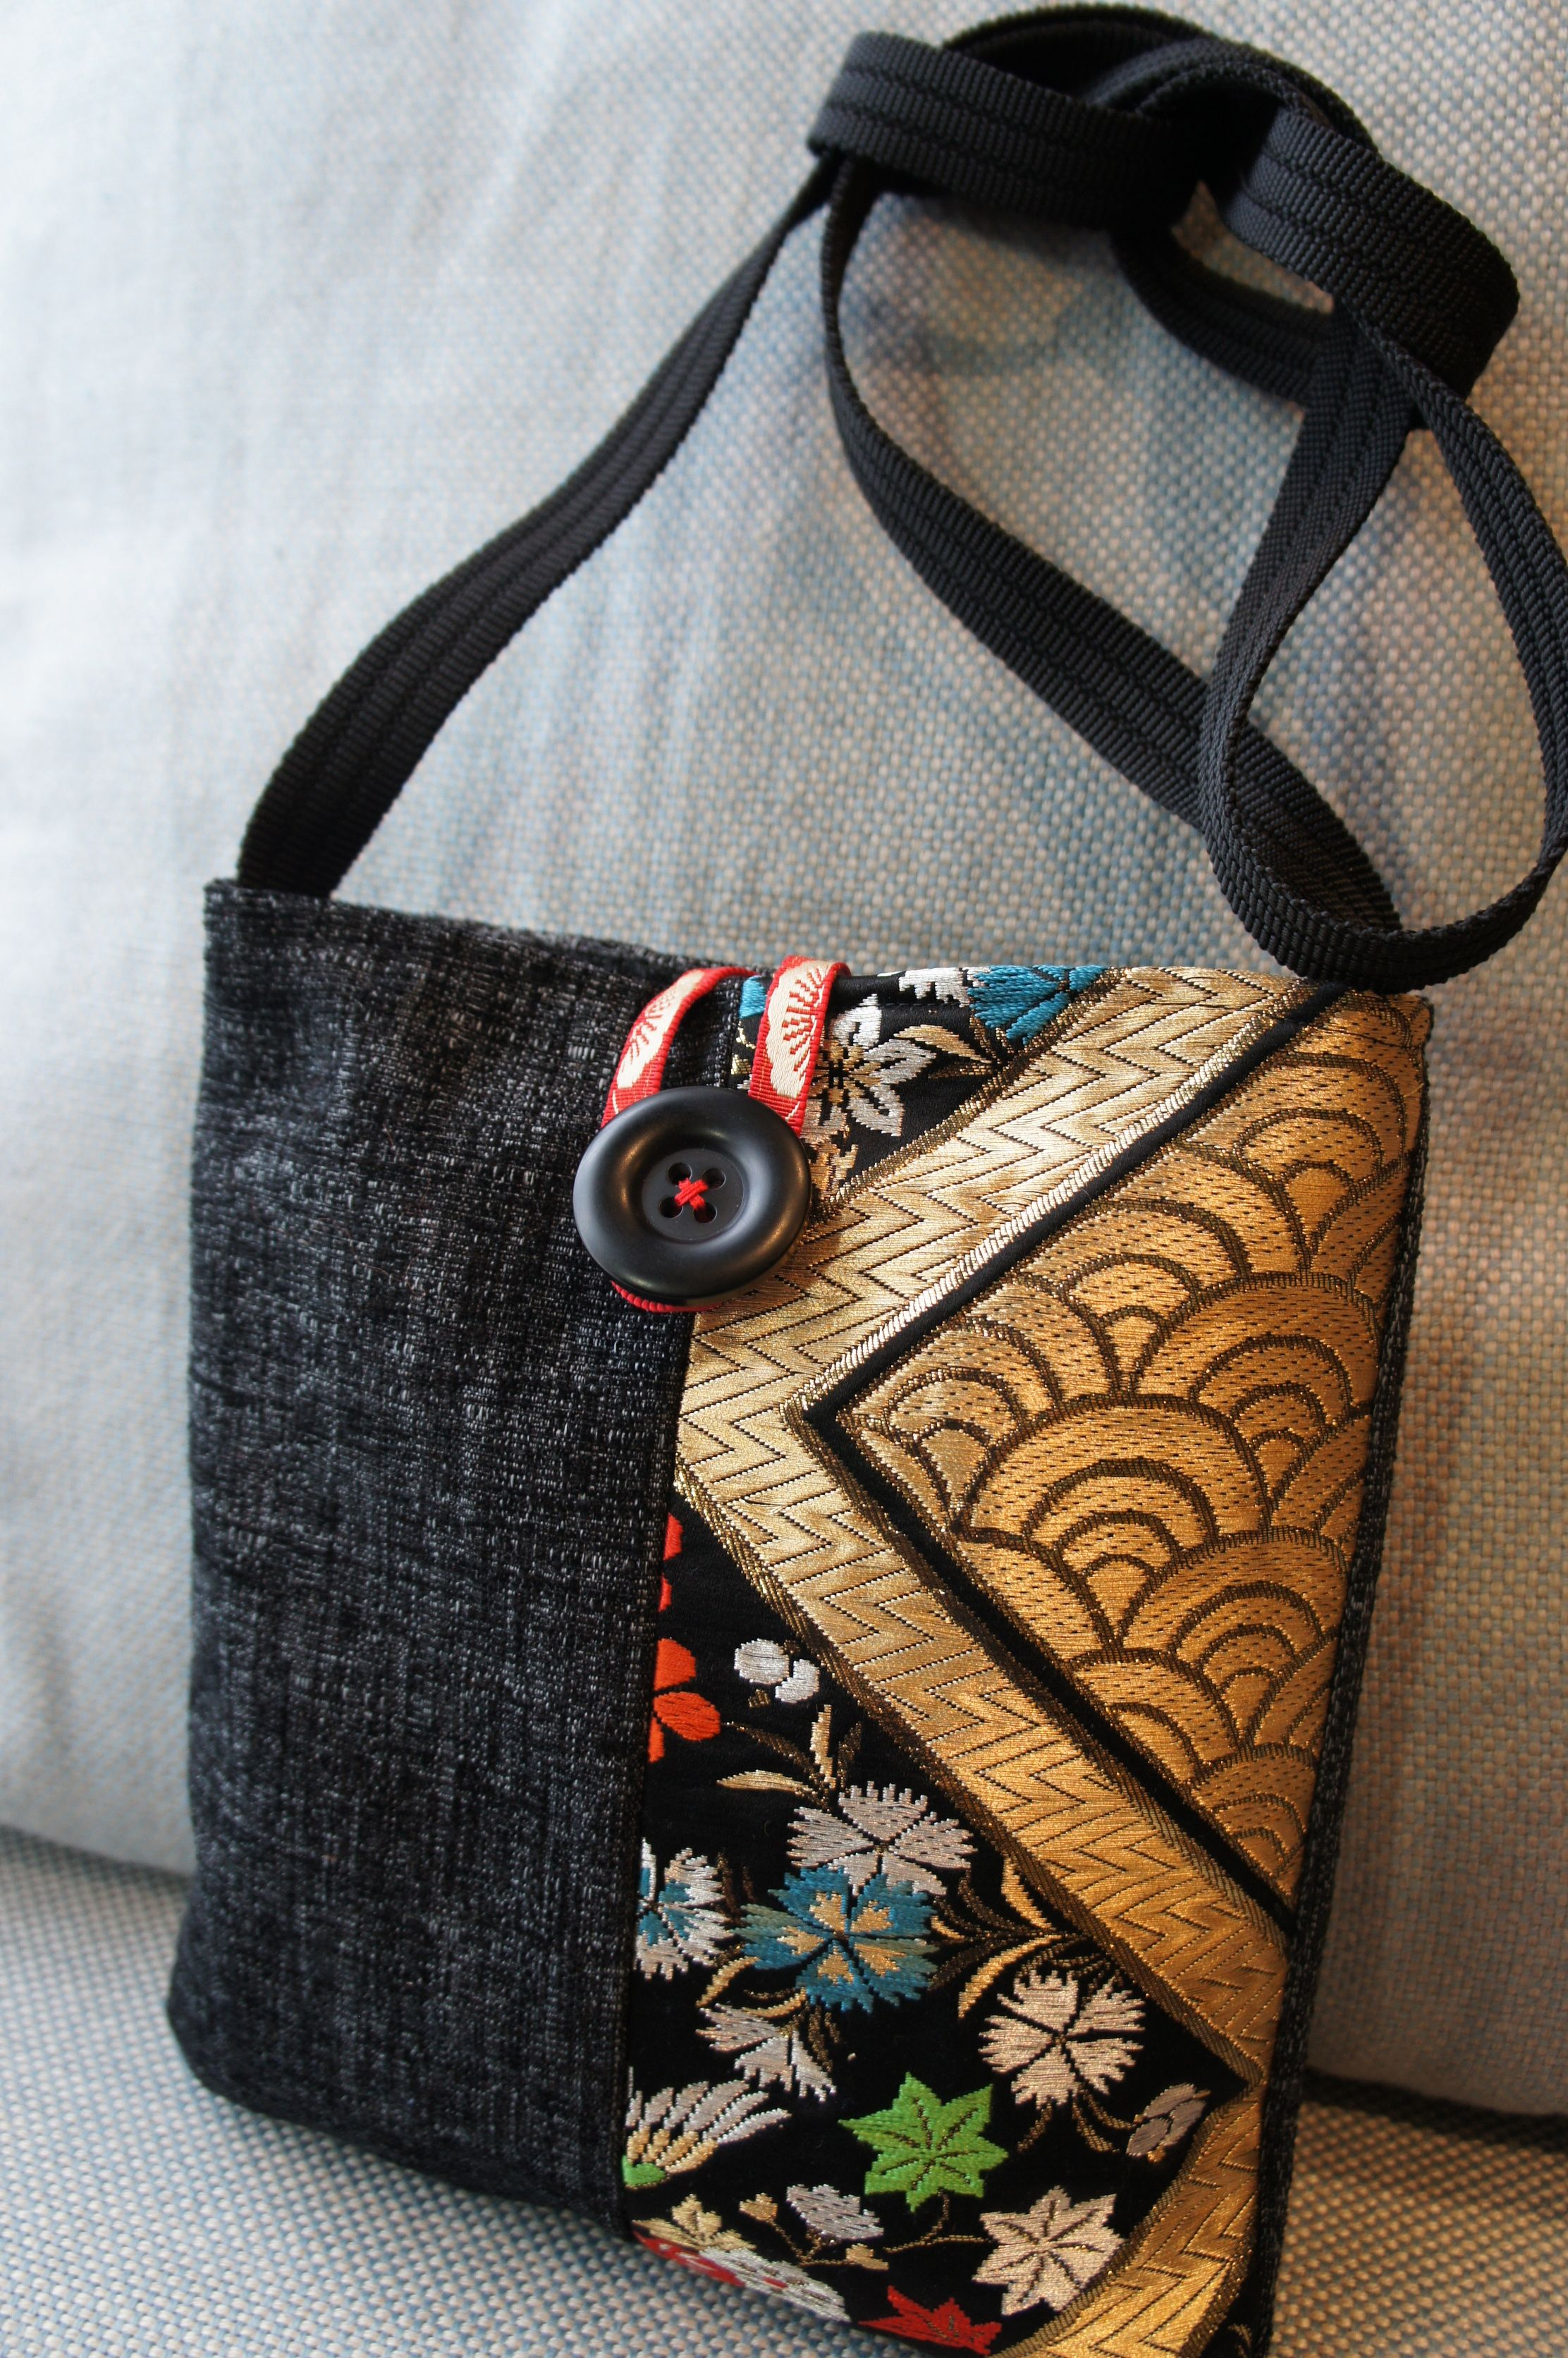 Hand Made Bag Made From Japanese Obi Kimono Fabric Shoulder Bag